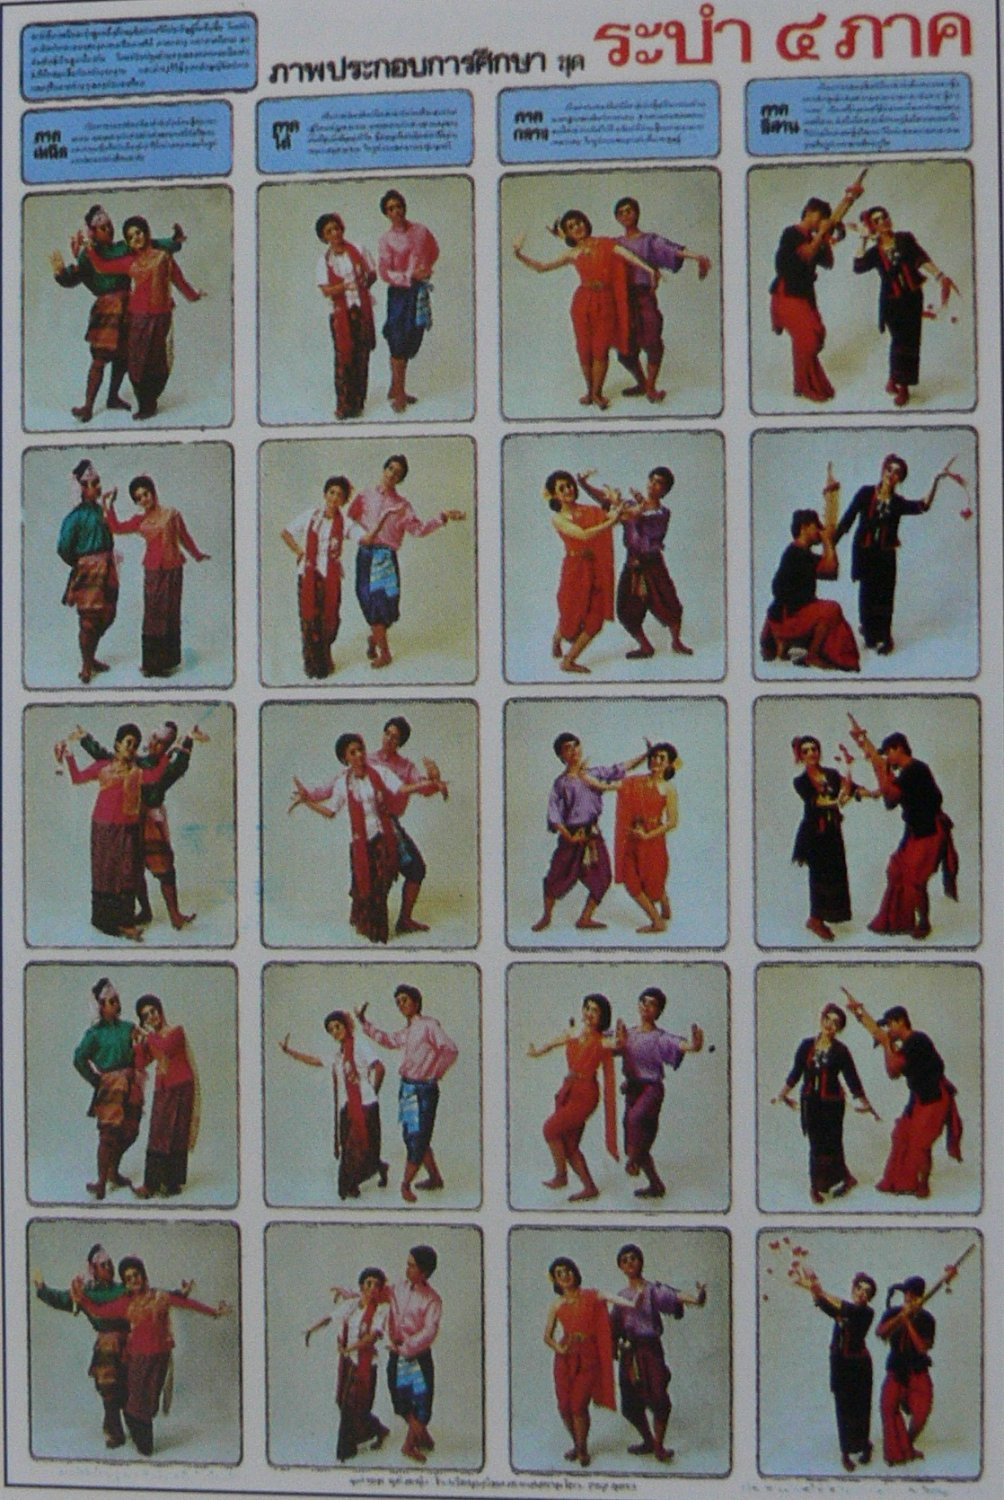 Thai Region Tradition Dancing Art Dance Poster Education Christmas New Year Gift